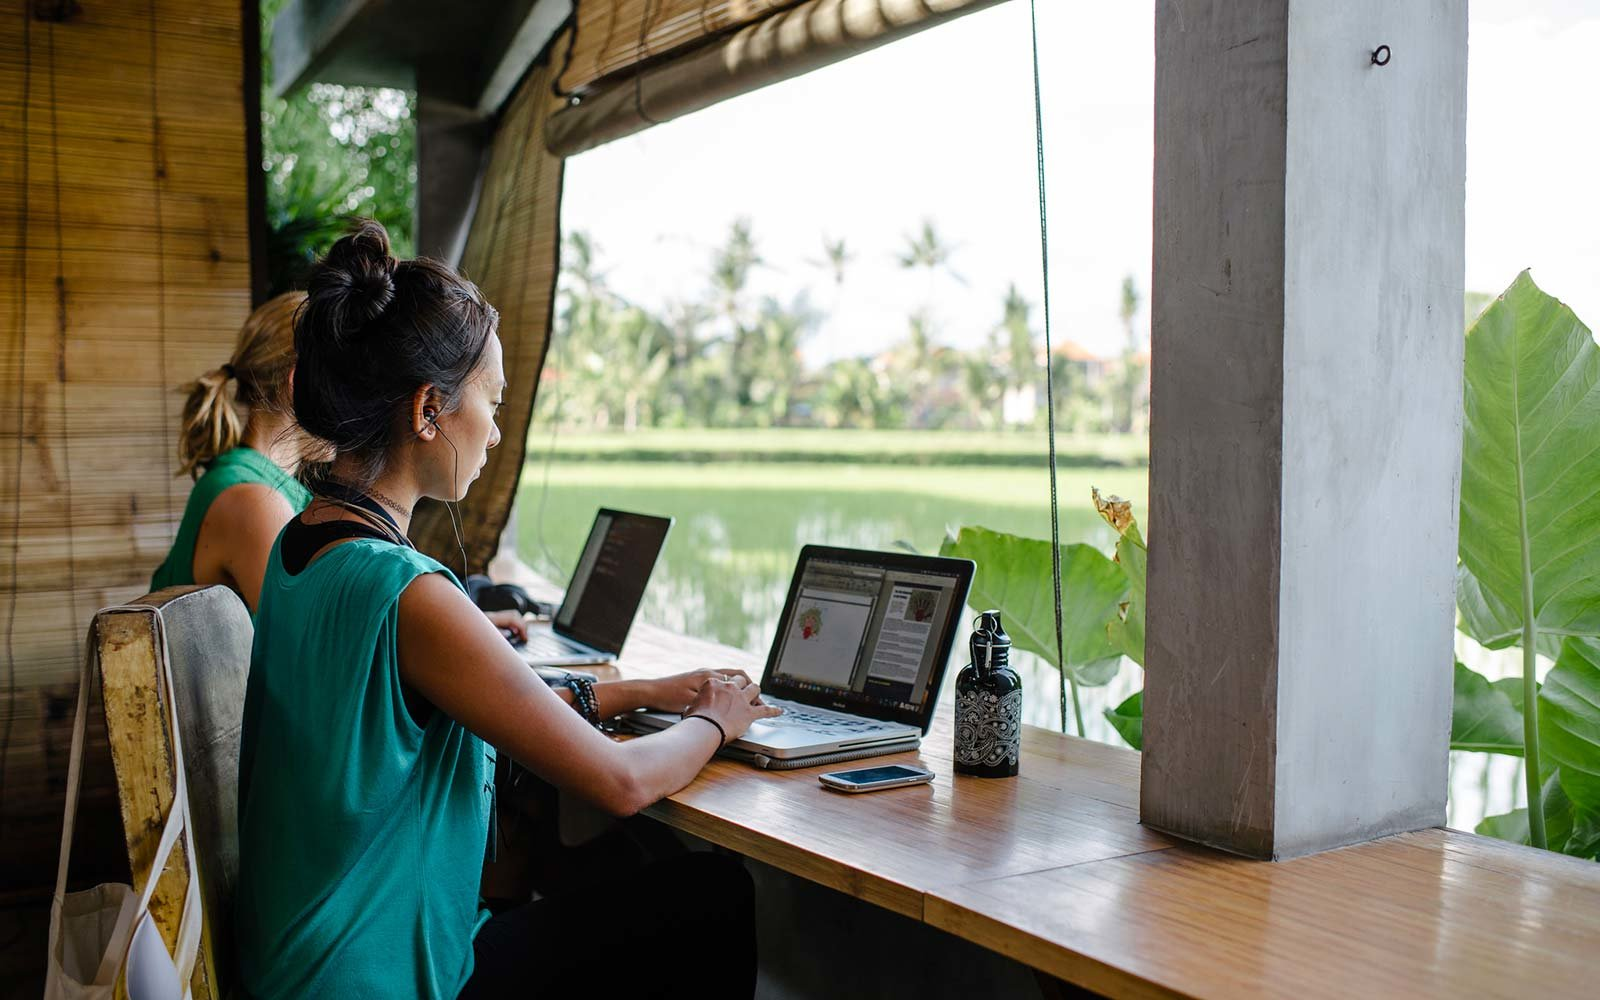 Digital nomad hotspots